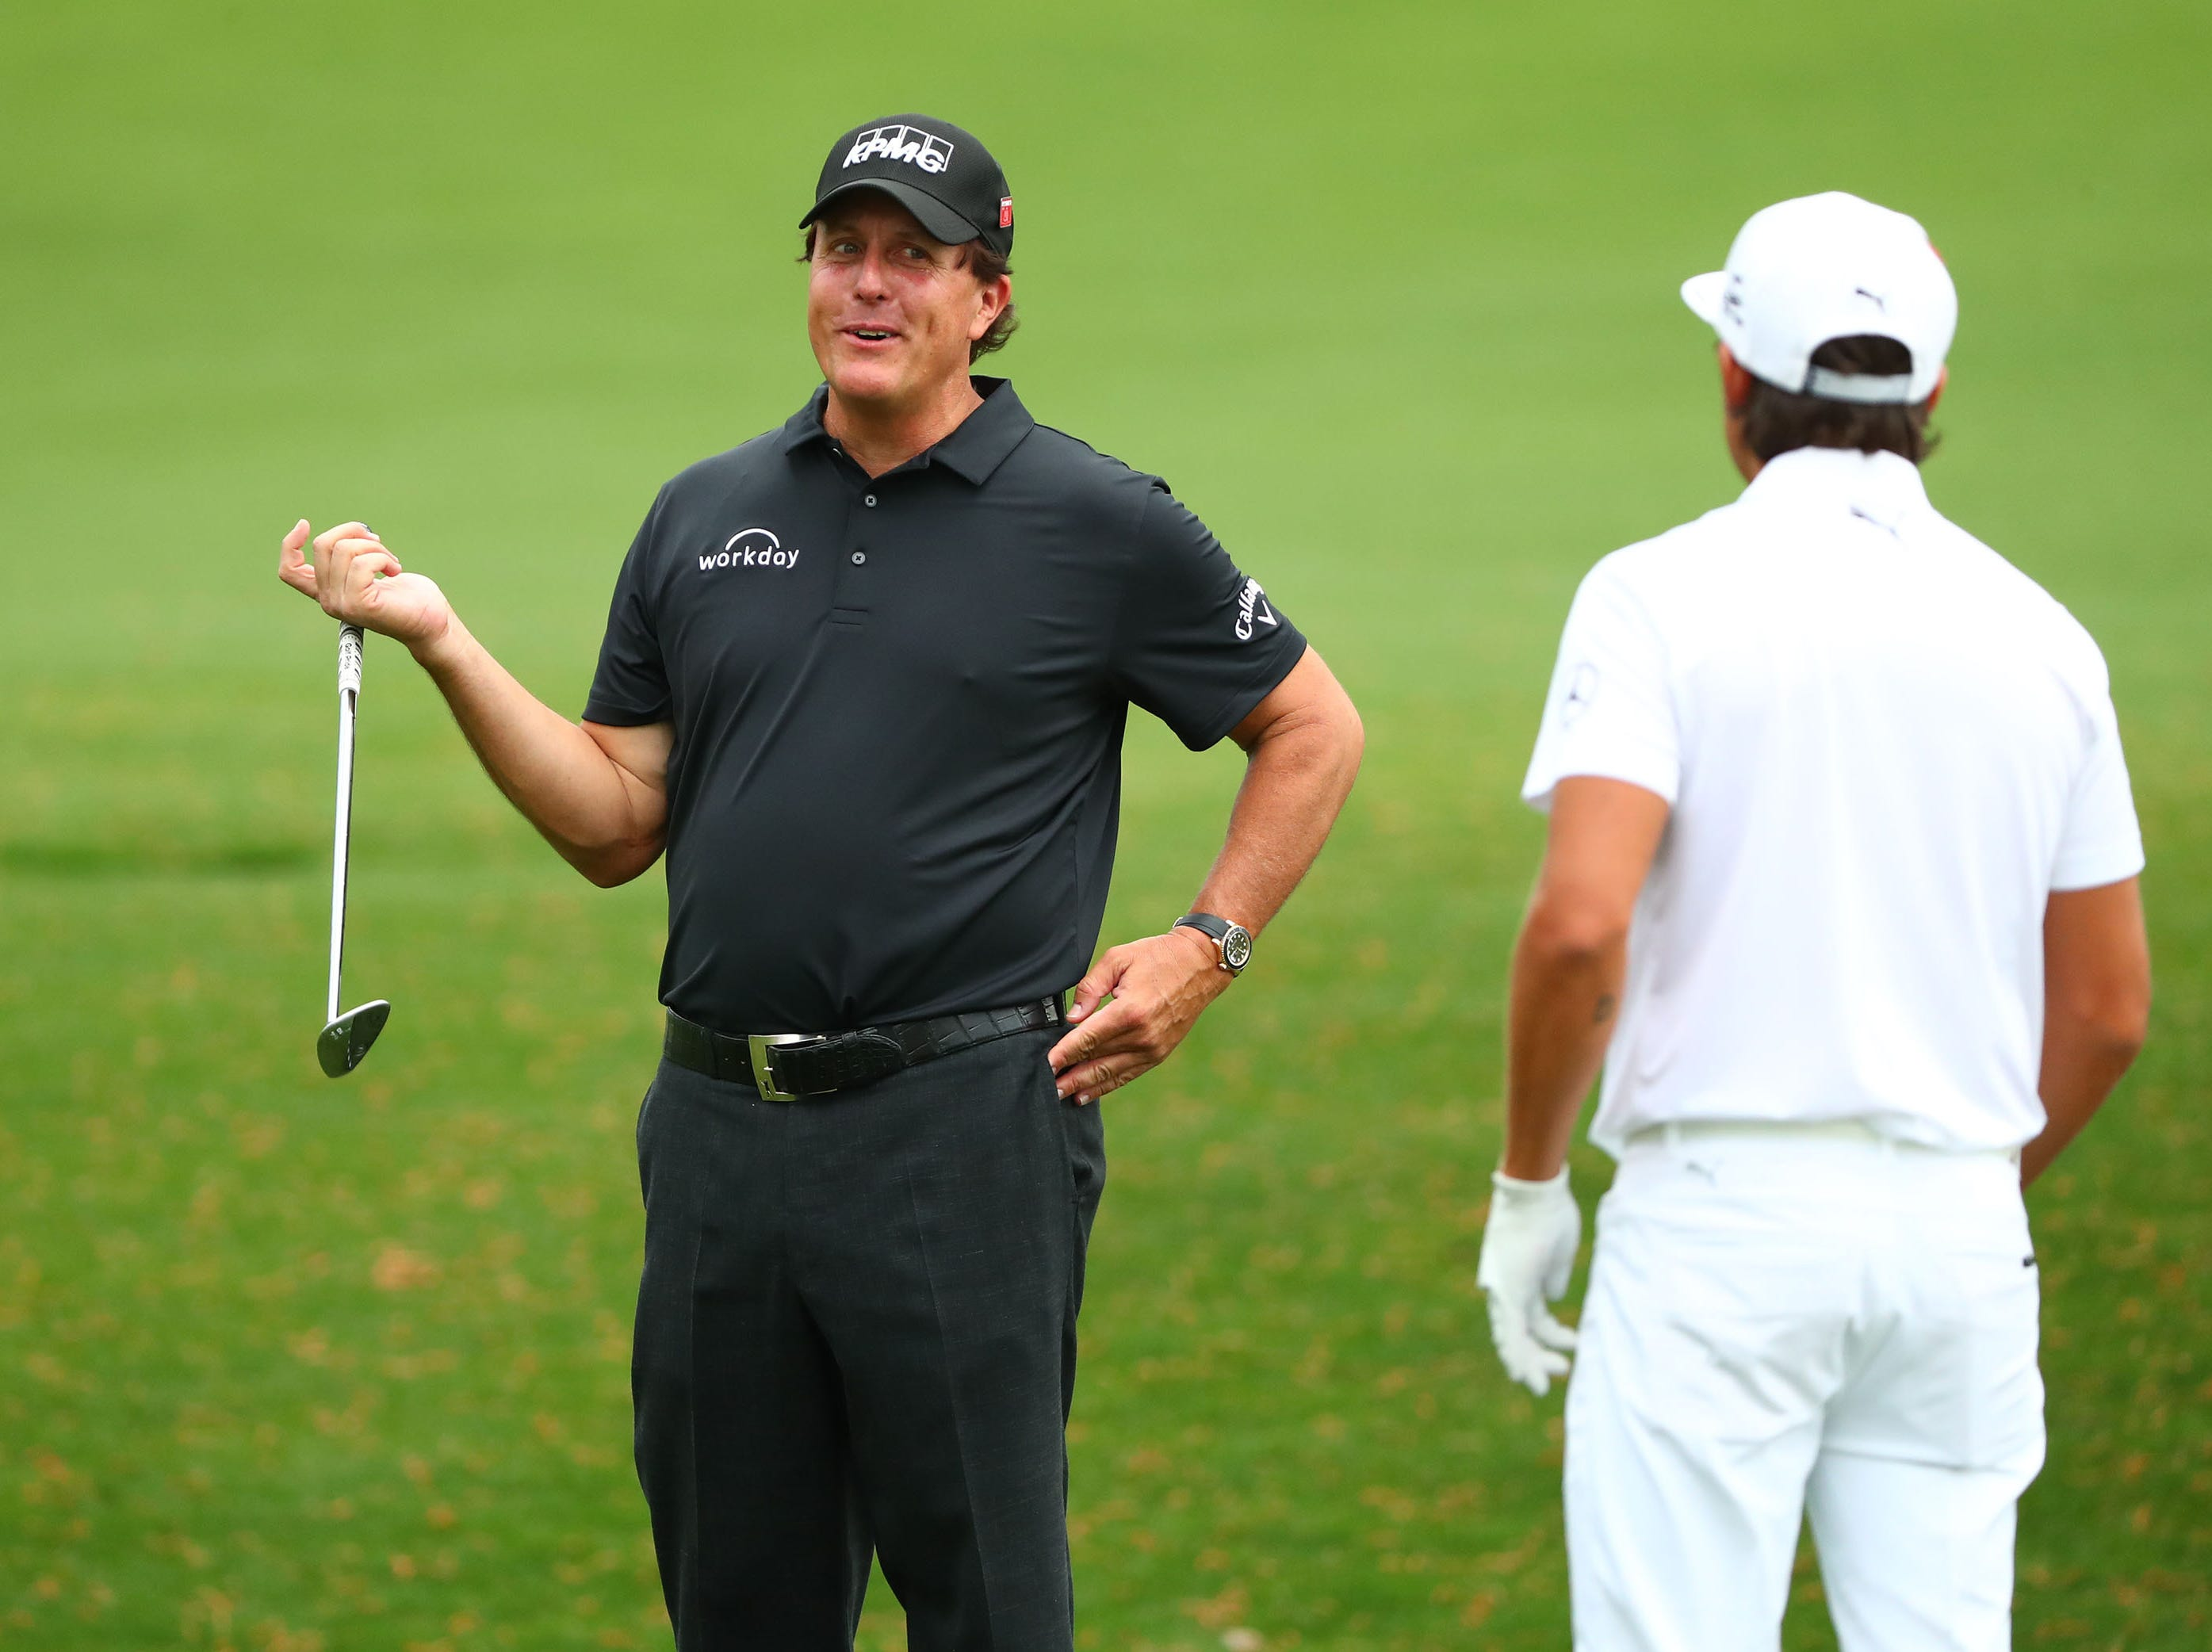 Phil Mickelson and Rickie Fowler (right) talk at the practice facility during a practice round for the Masters golf tournament at Augusta National Golf Club.